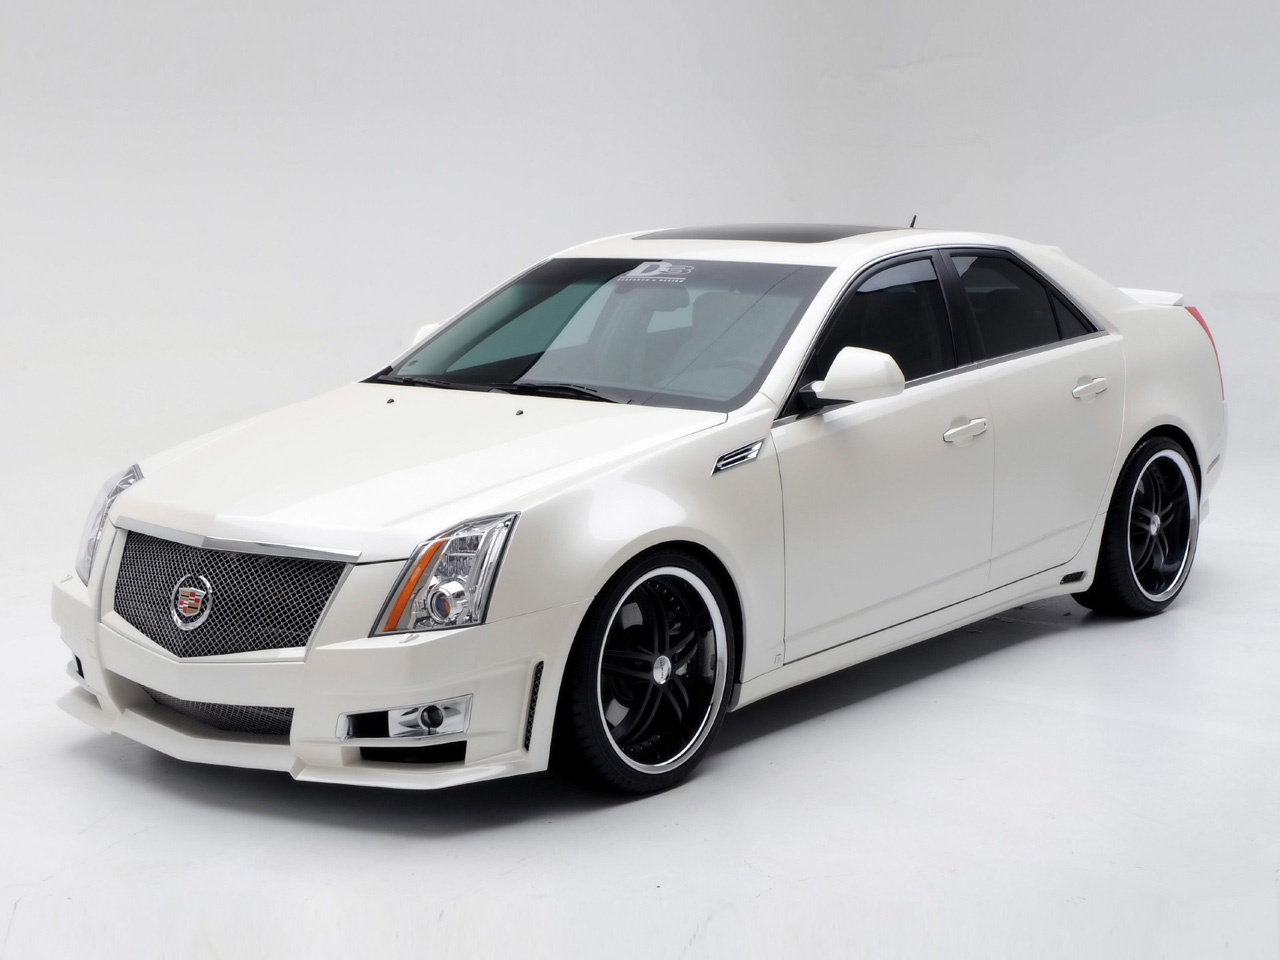 Cadillac Cts Tuning Wallpapers Background